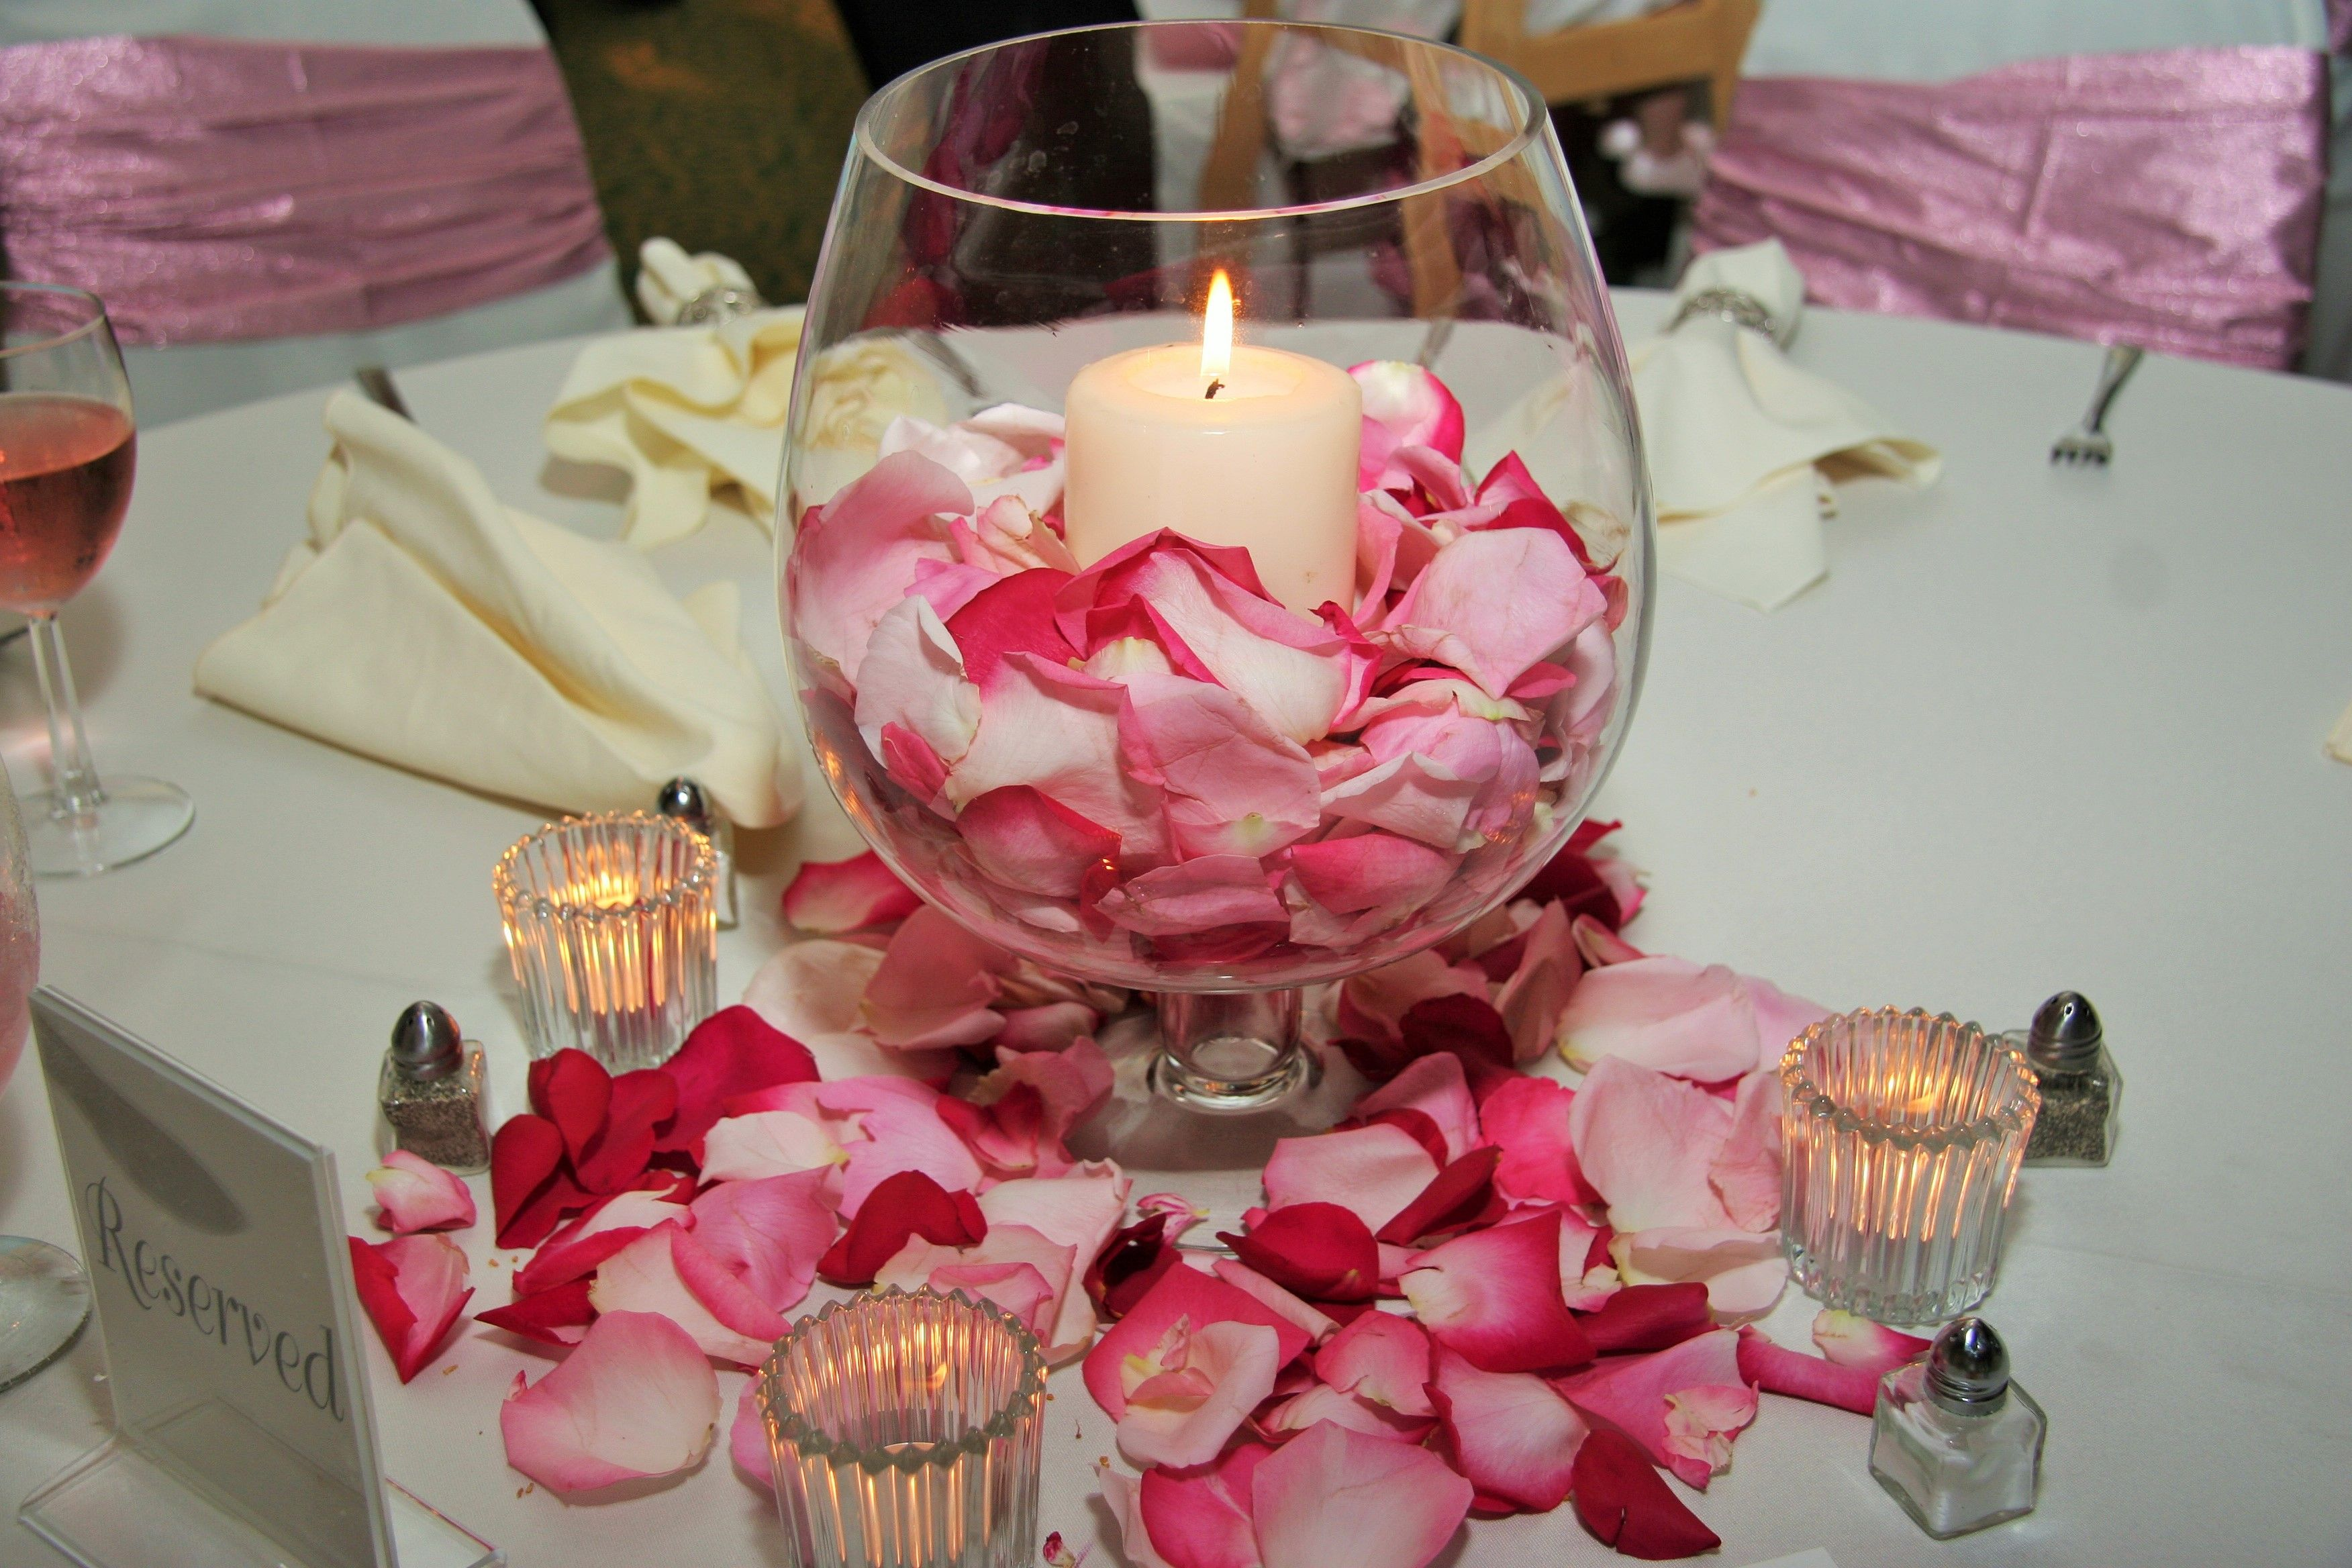 Glass Vase Candle Holder Wedding Centerpiece surrounded by Rose ...